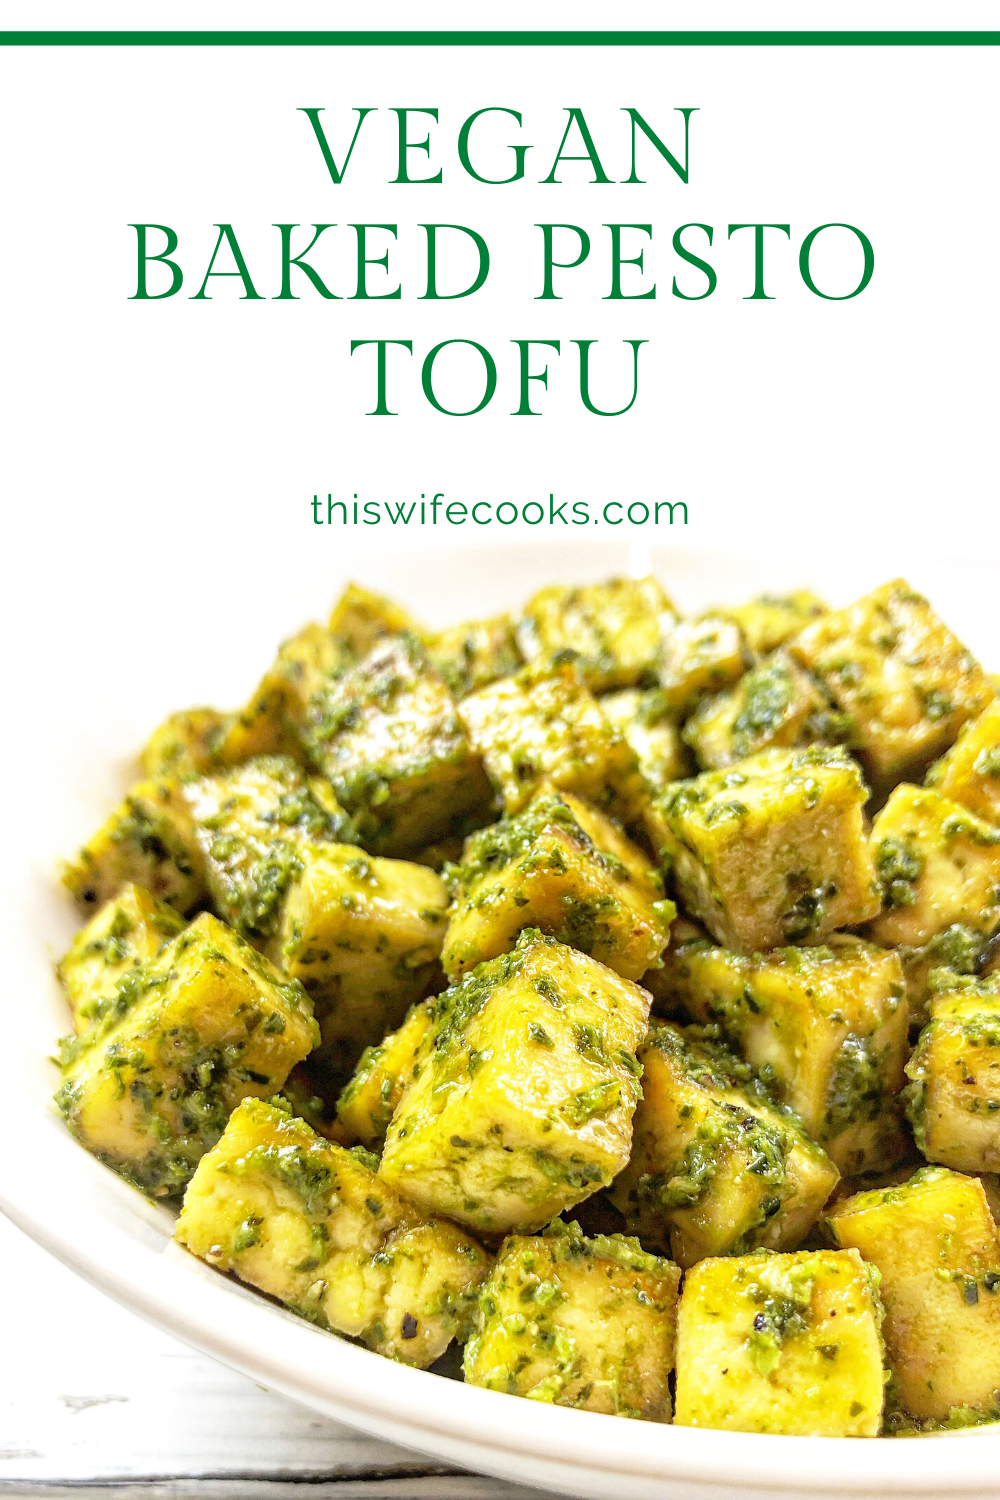 Baked Pesto Tofu - Basil pesto is tossed with tofu that has been seasoned and roasted with simple spices for a savory dish that is practically effortless! #quickandeasyvegan #bakedtofu #pestotofu #thiswifecooksrecipes #easyplantbasedrecipes #highproteinvegan #easyveganrecipes via @thiswifecooks